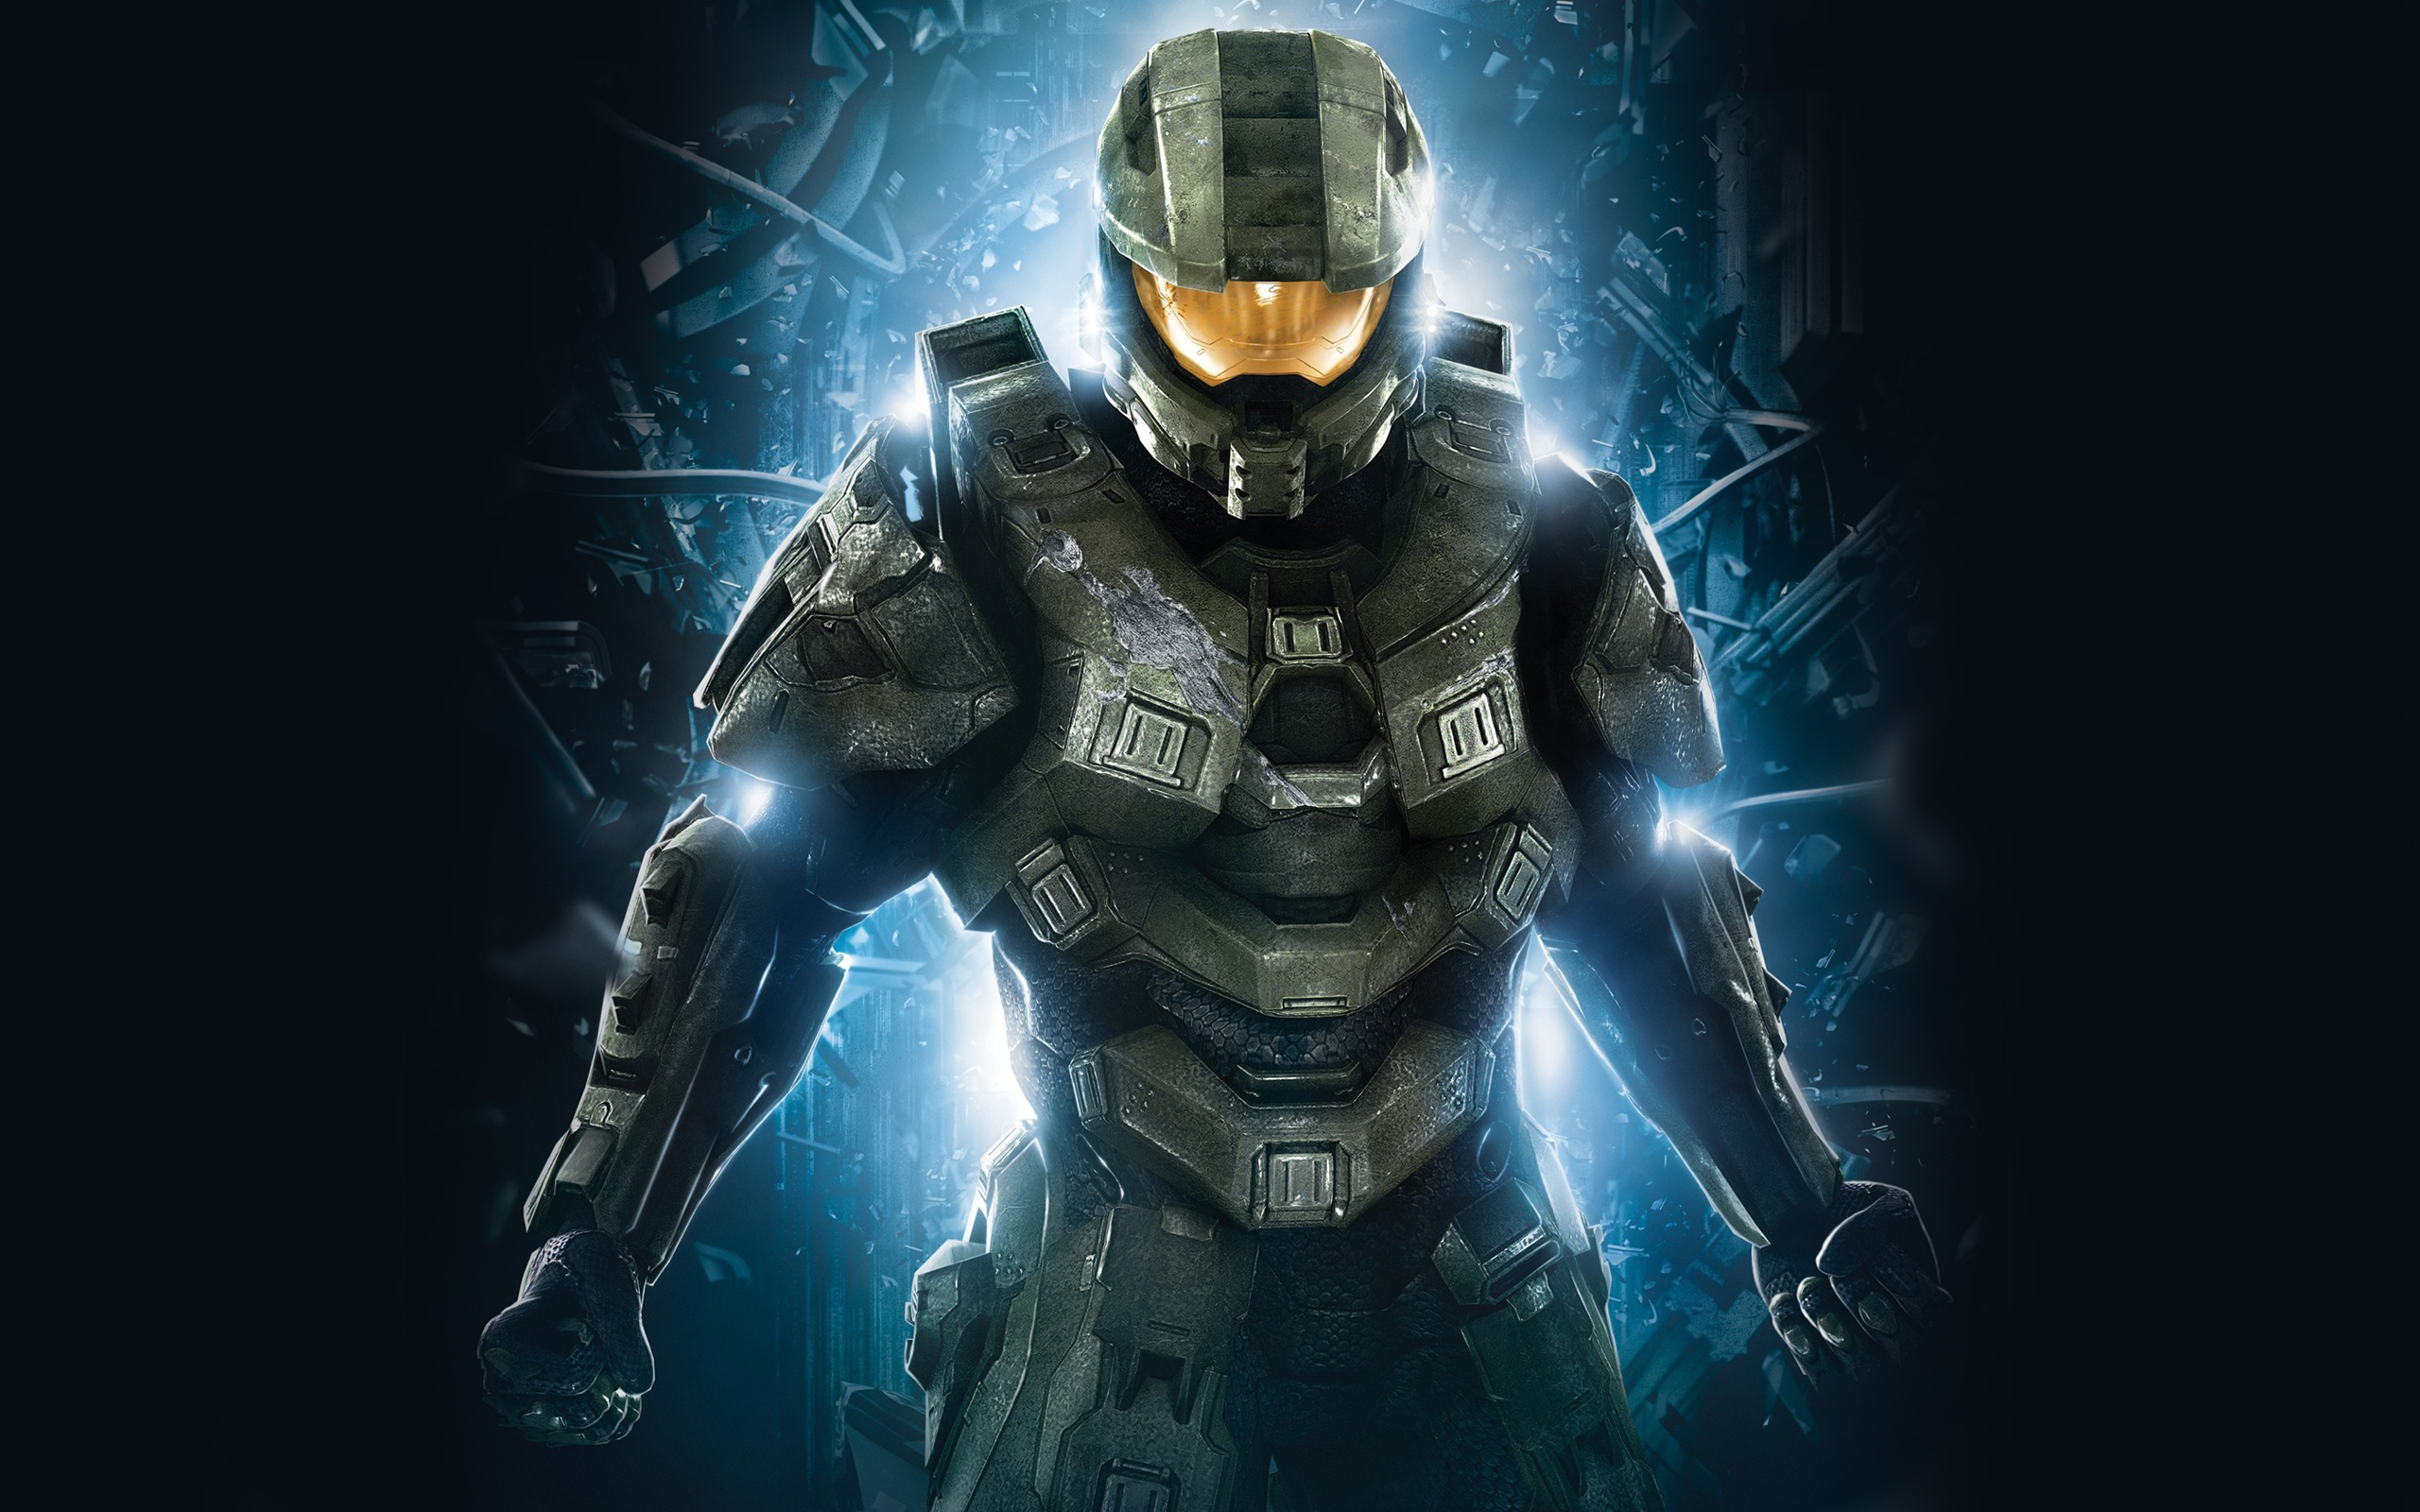 Master Chief in Halo 4 2125.4 Kb